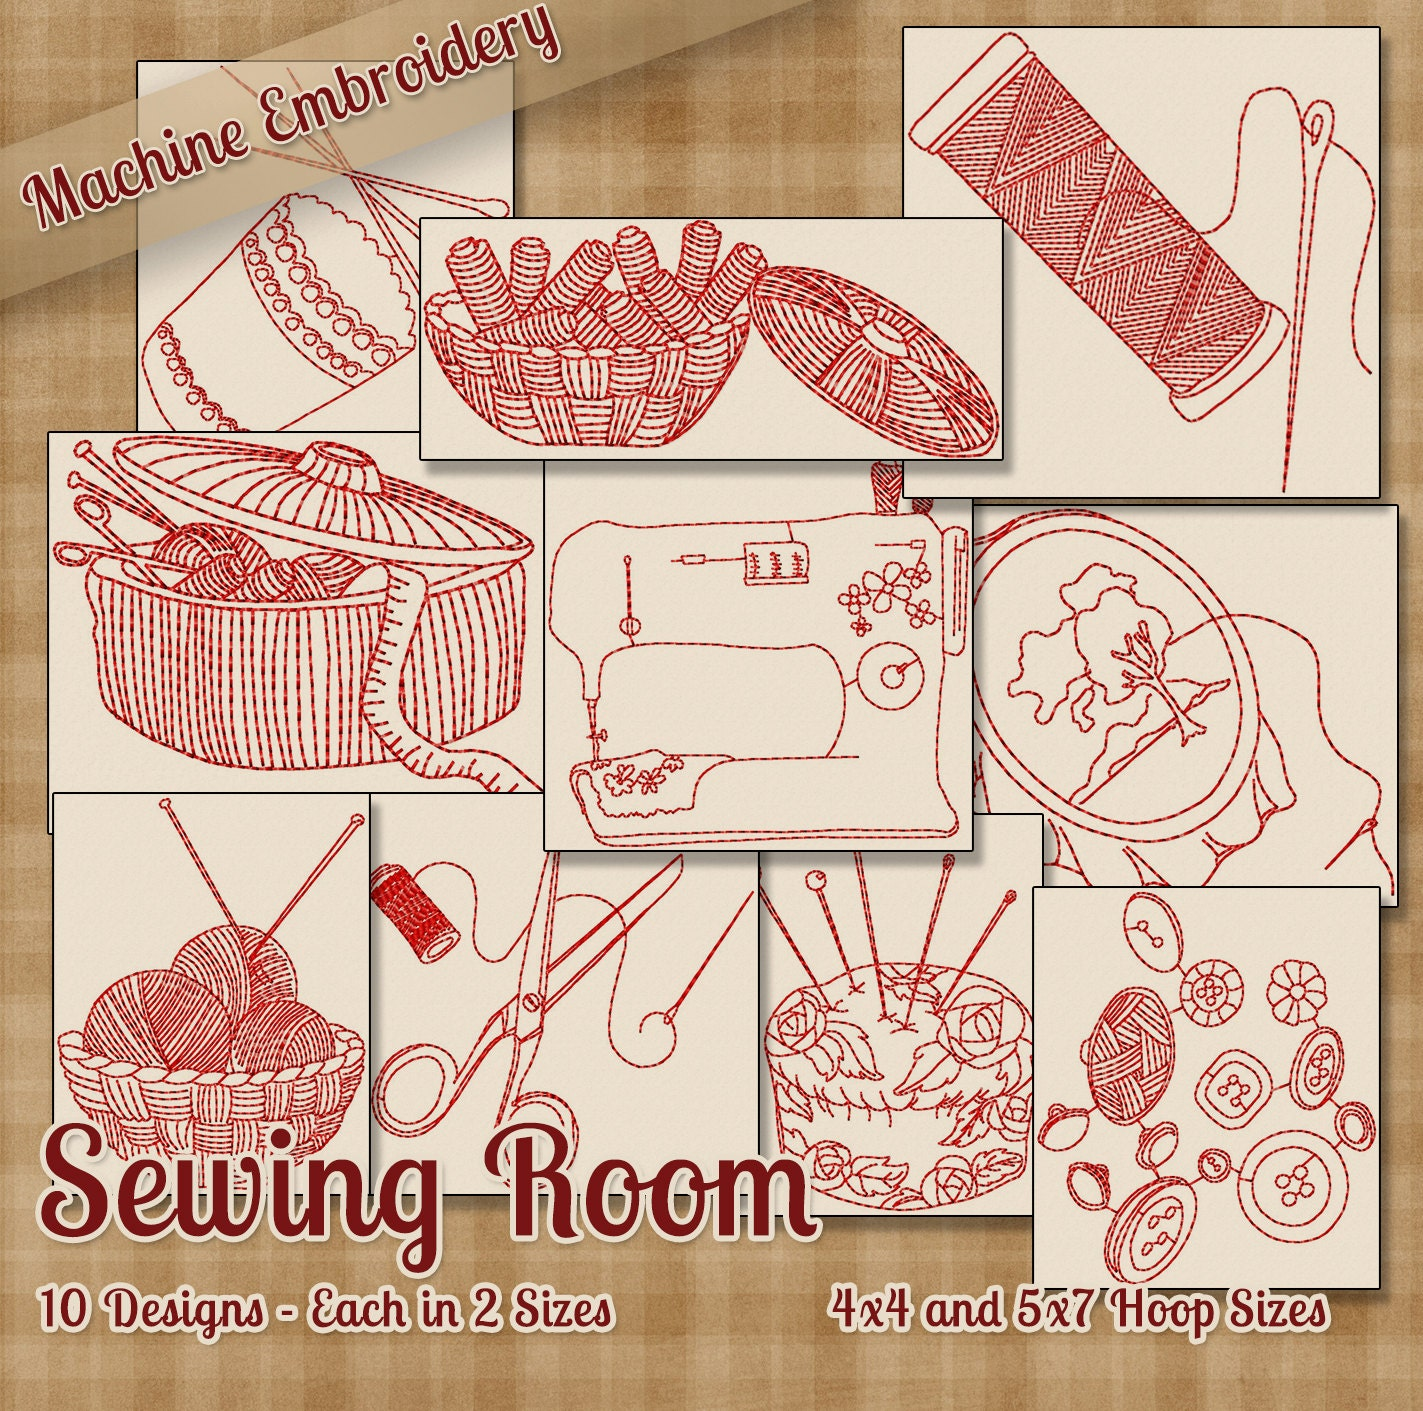 Sewing room redwork embroidery machine designs patterns